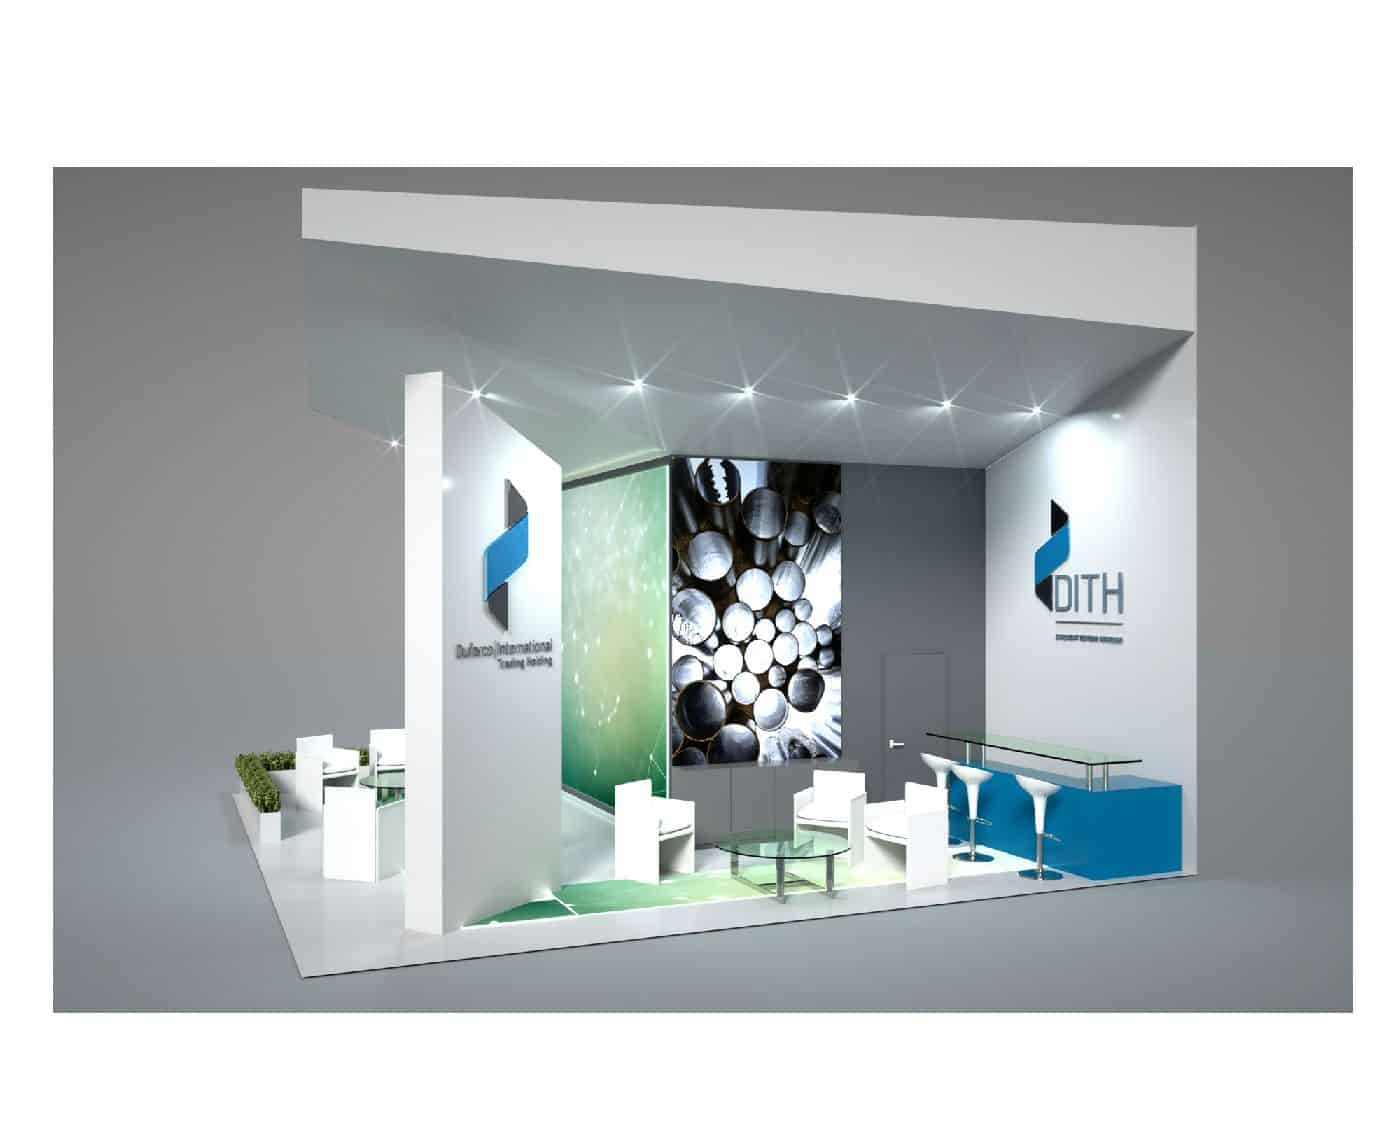 inkout_dith_duferco_commerciale_spa_stand_01